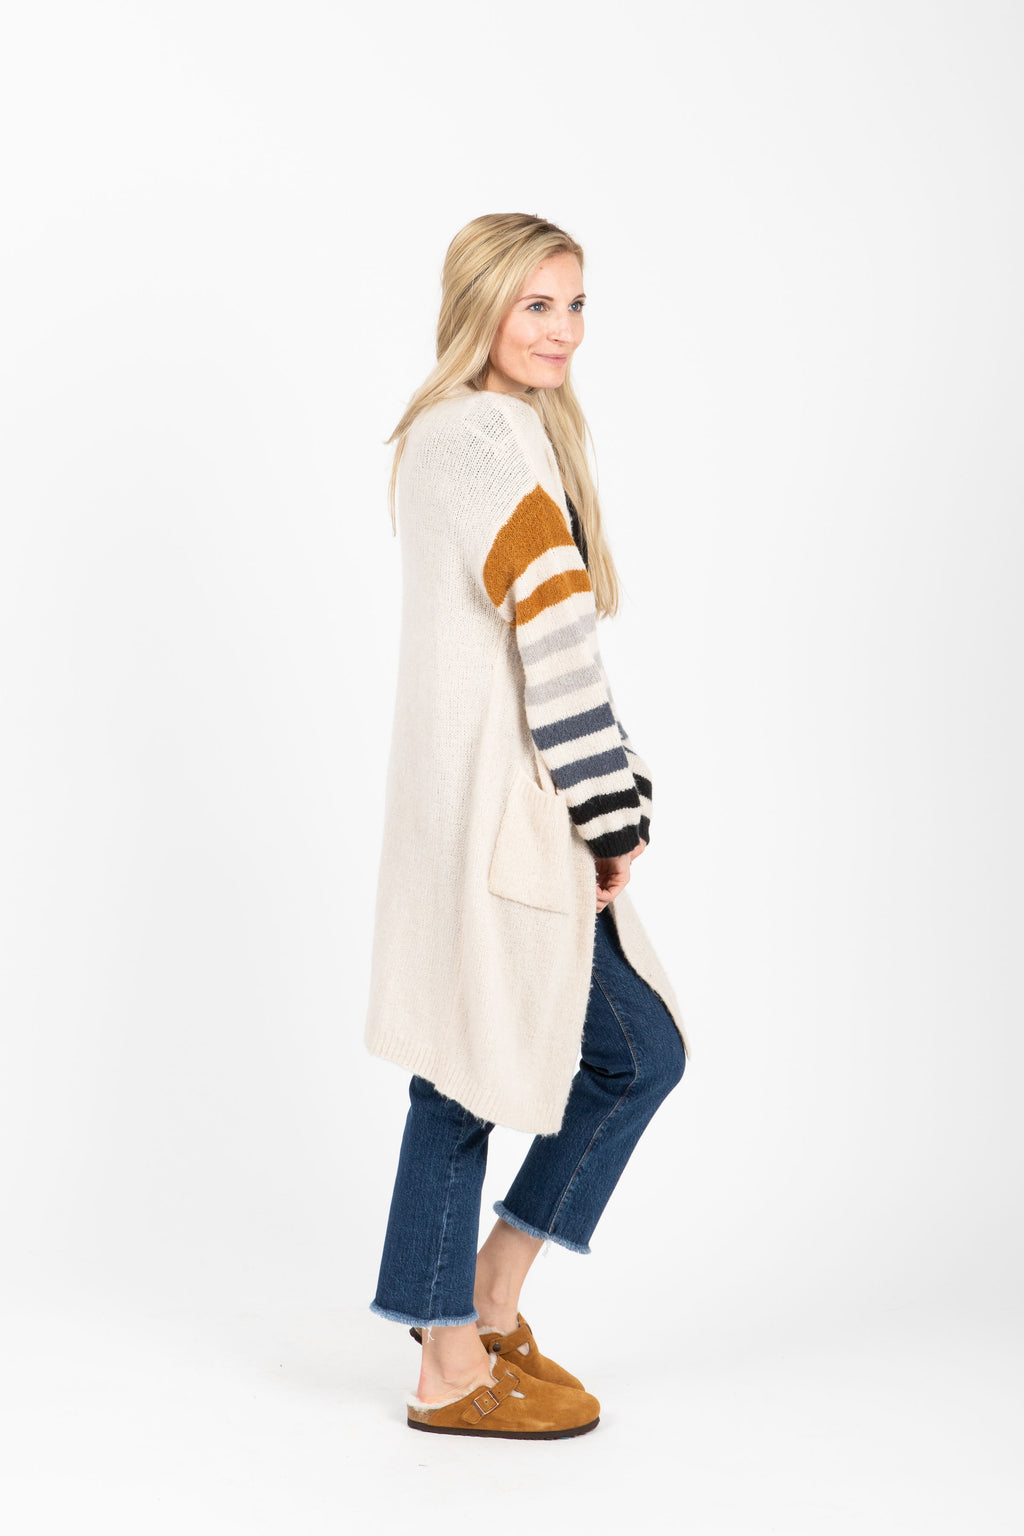 The Time Cozy Striped Cardigan in Ivory